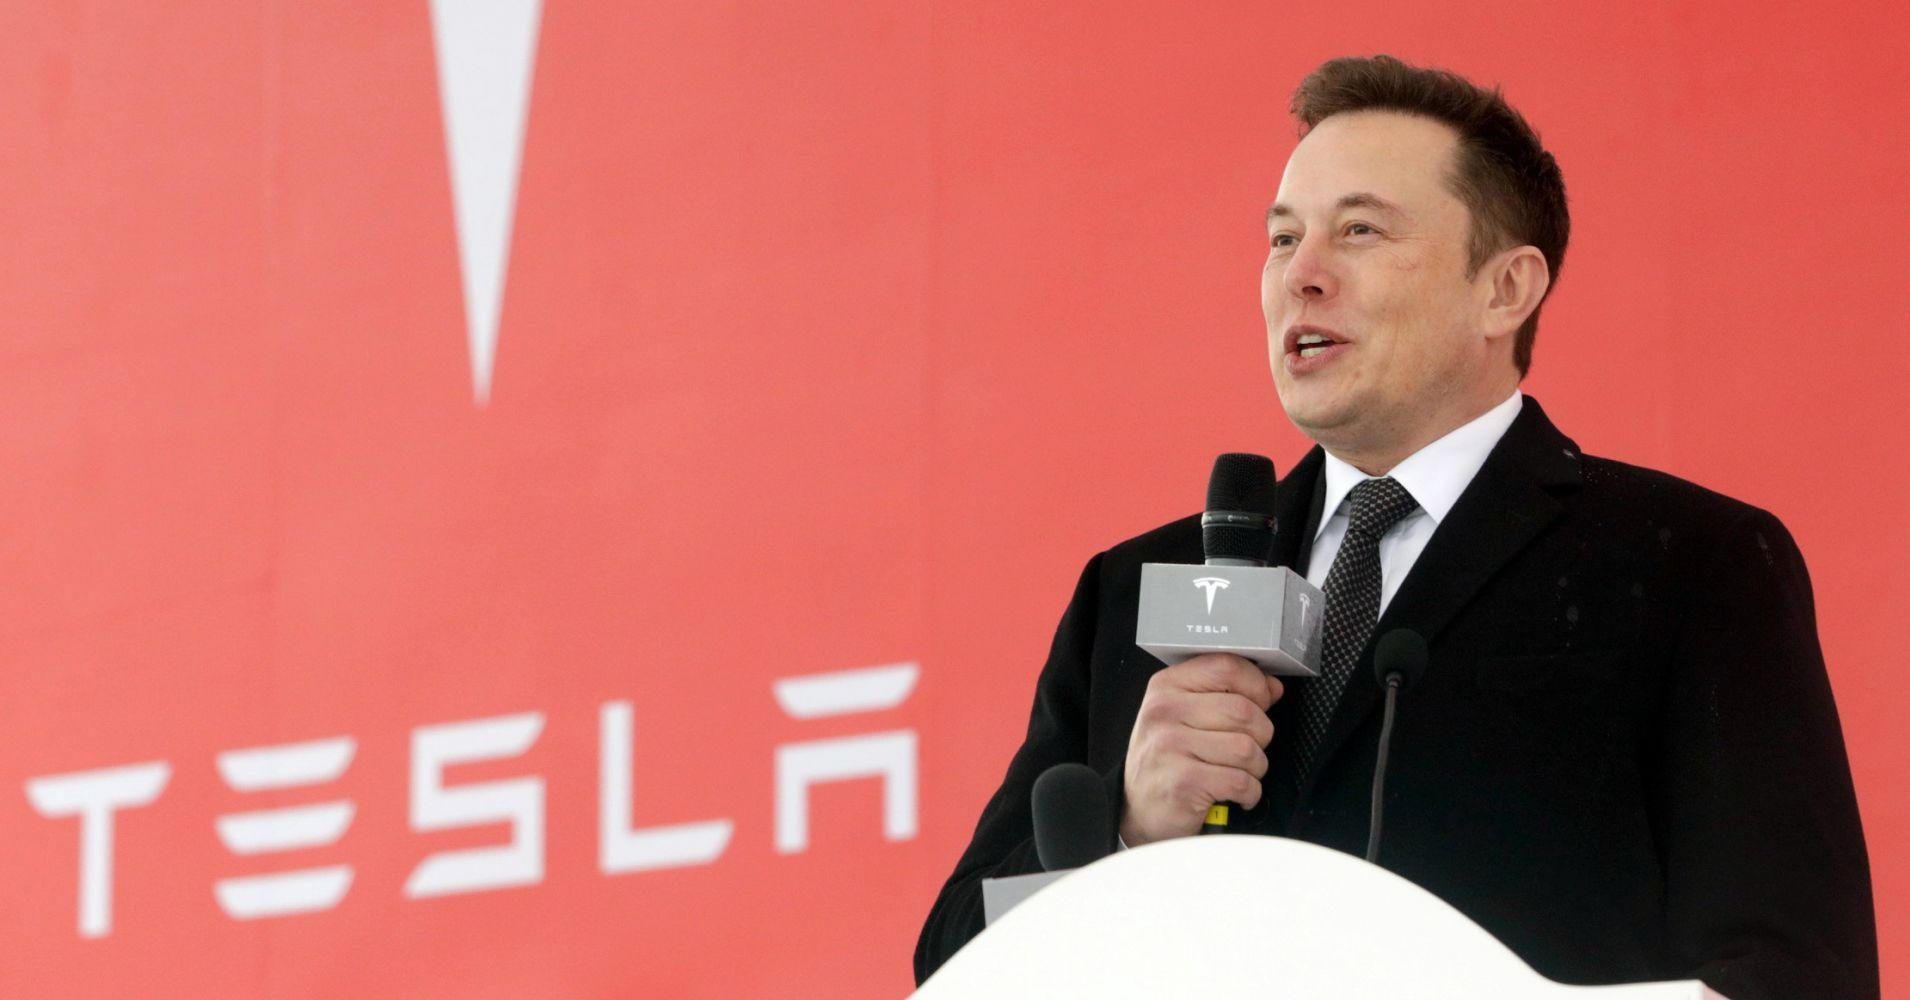 Tesla faces a cash crunch with a $920 million debt payment due Friday